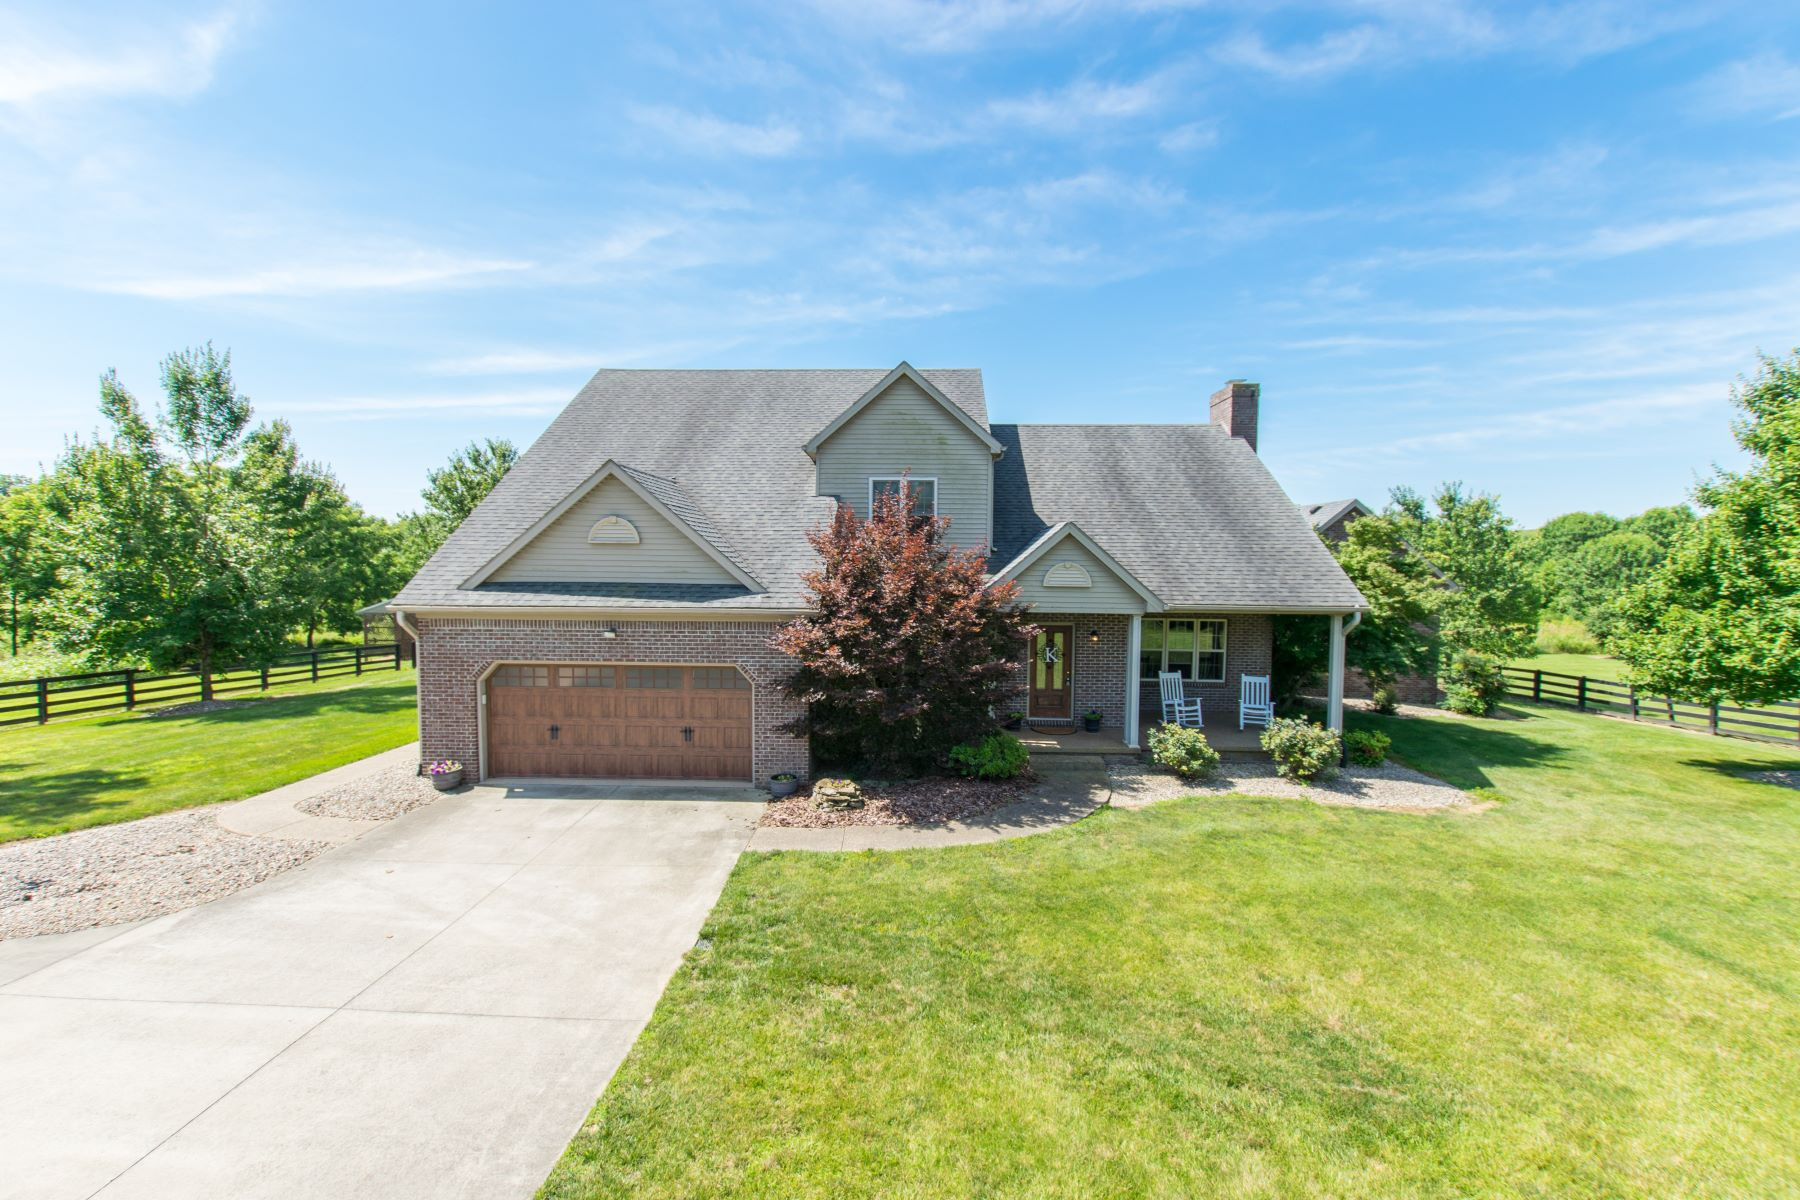 Single Family Home for Sale at 412 Kelch Lane Lebanon, Kentucky 40033 United States